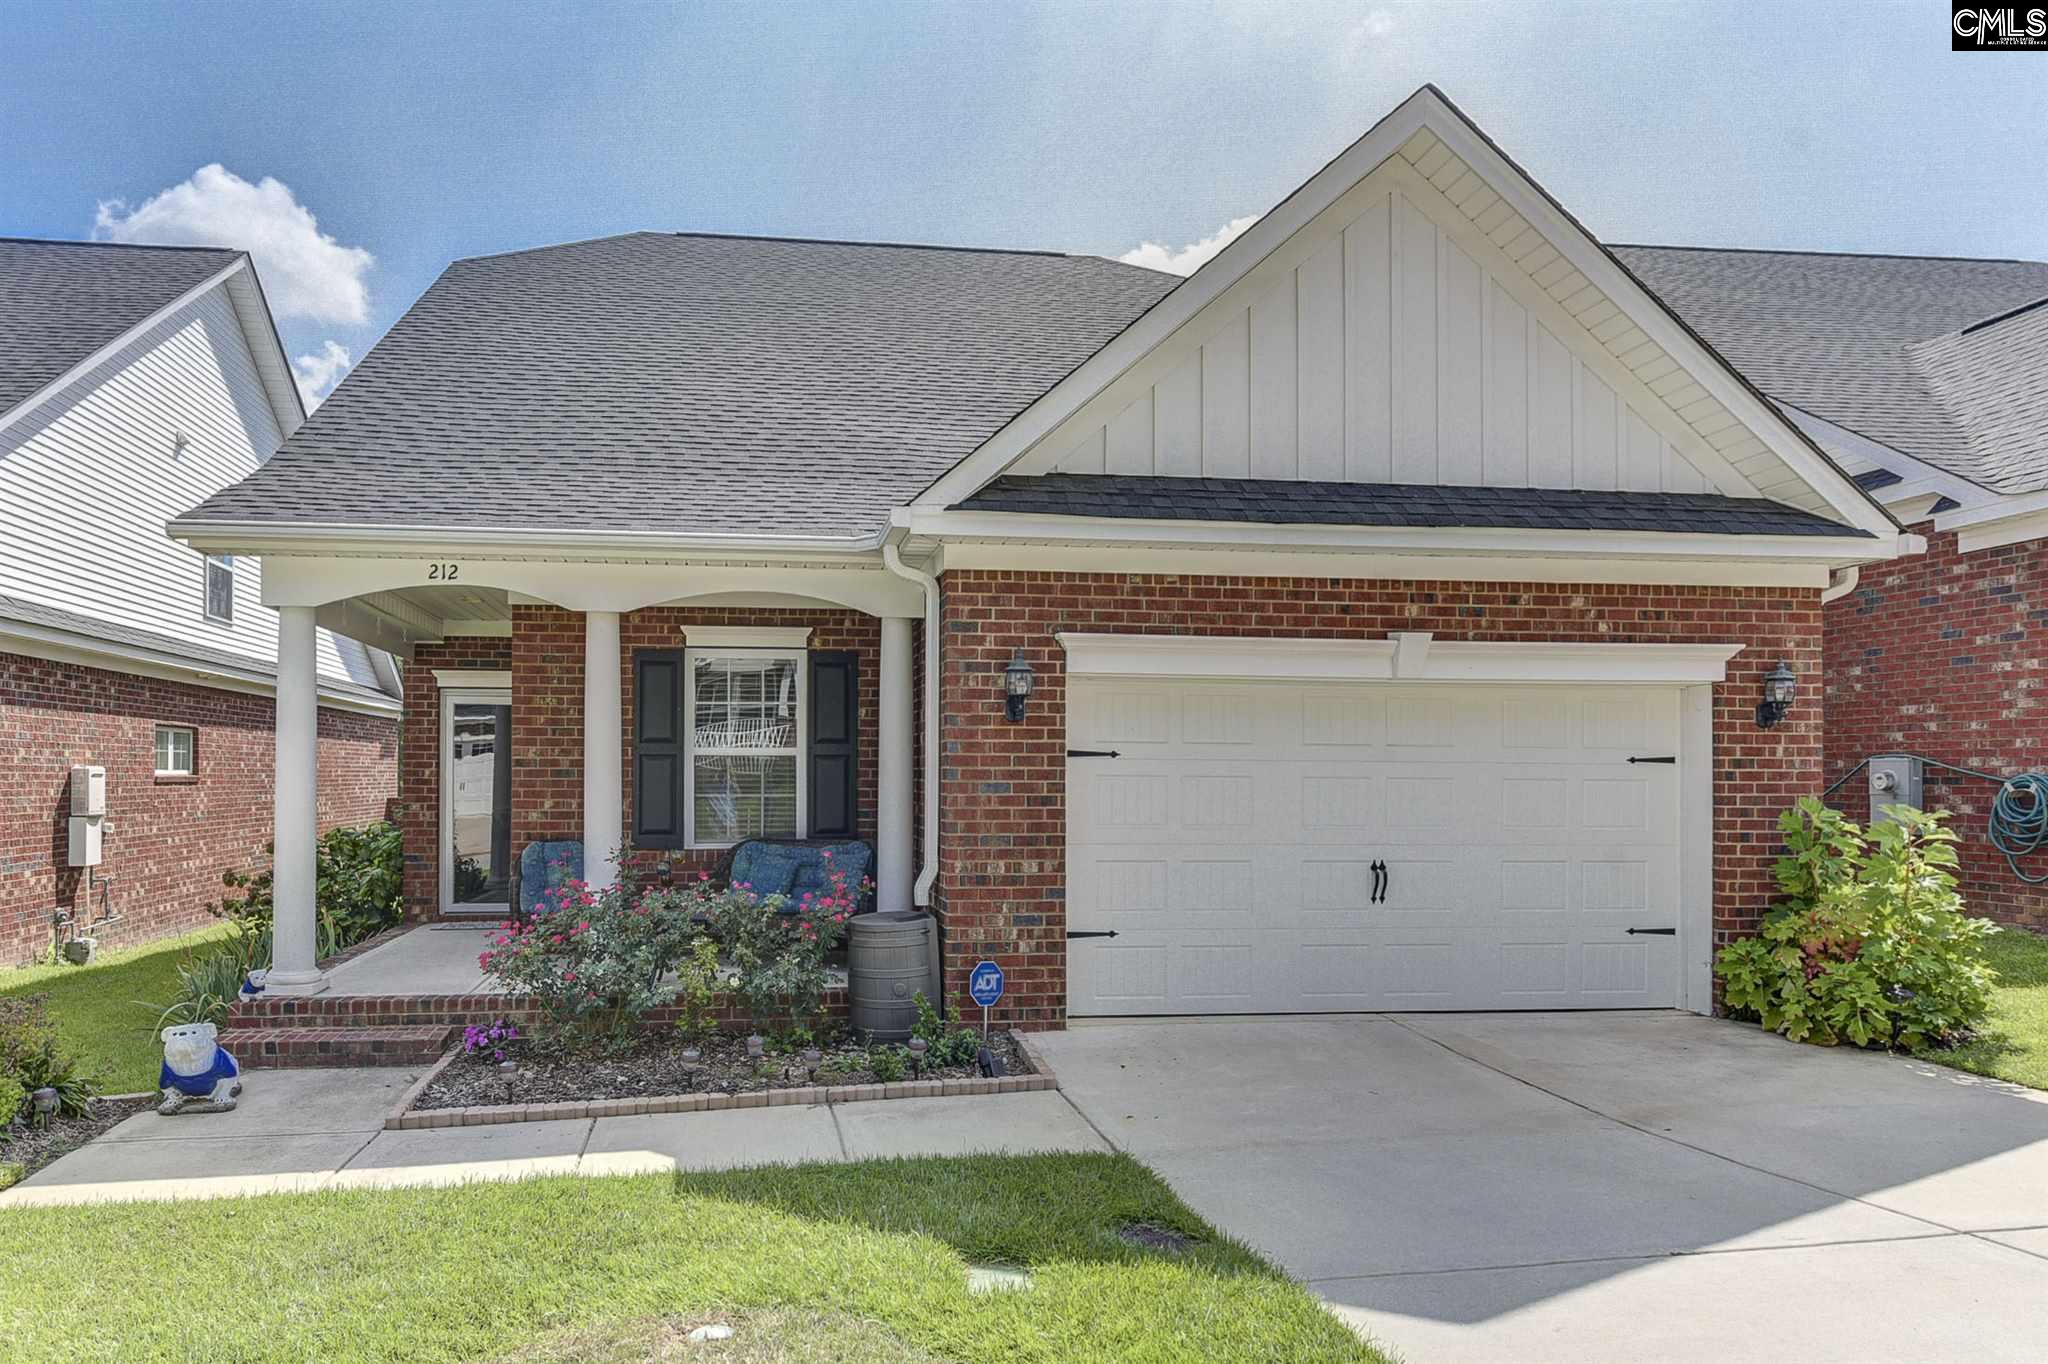 212 Palm Hill Columbia, SC 29212-2150